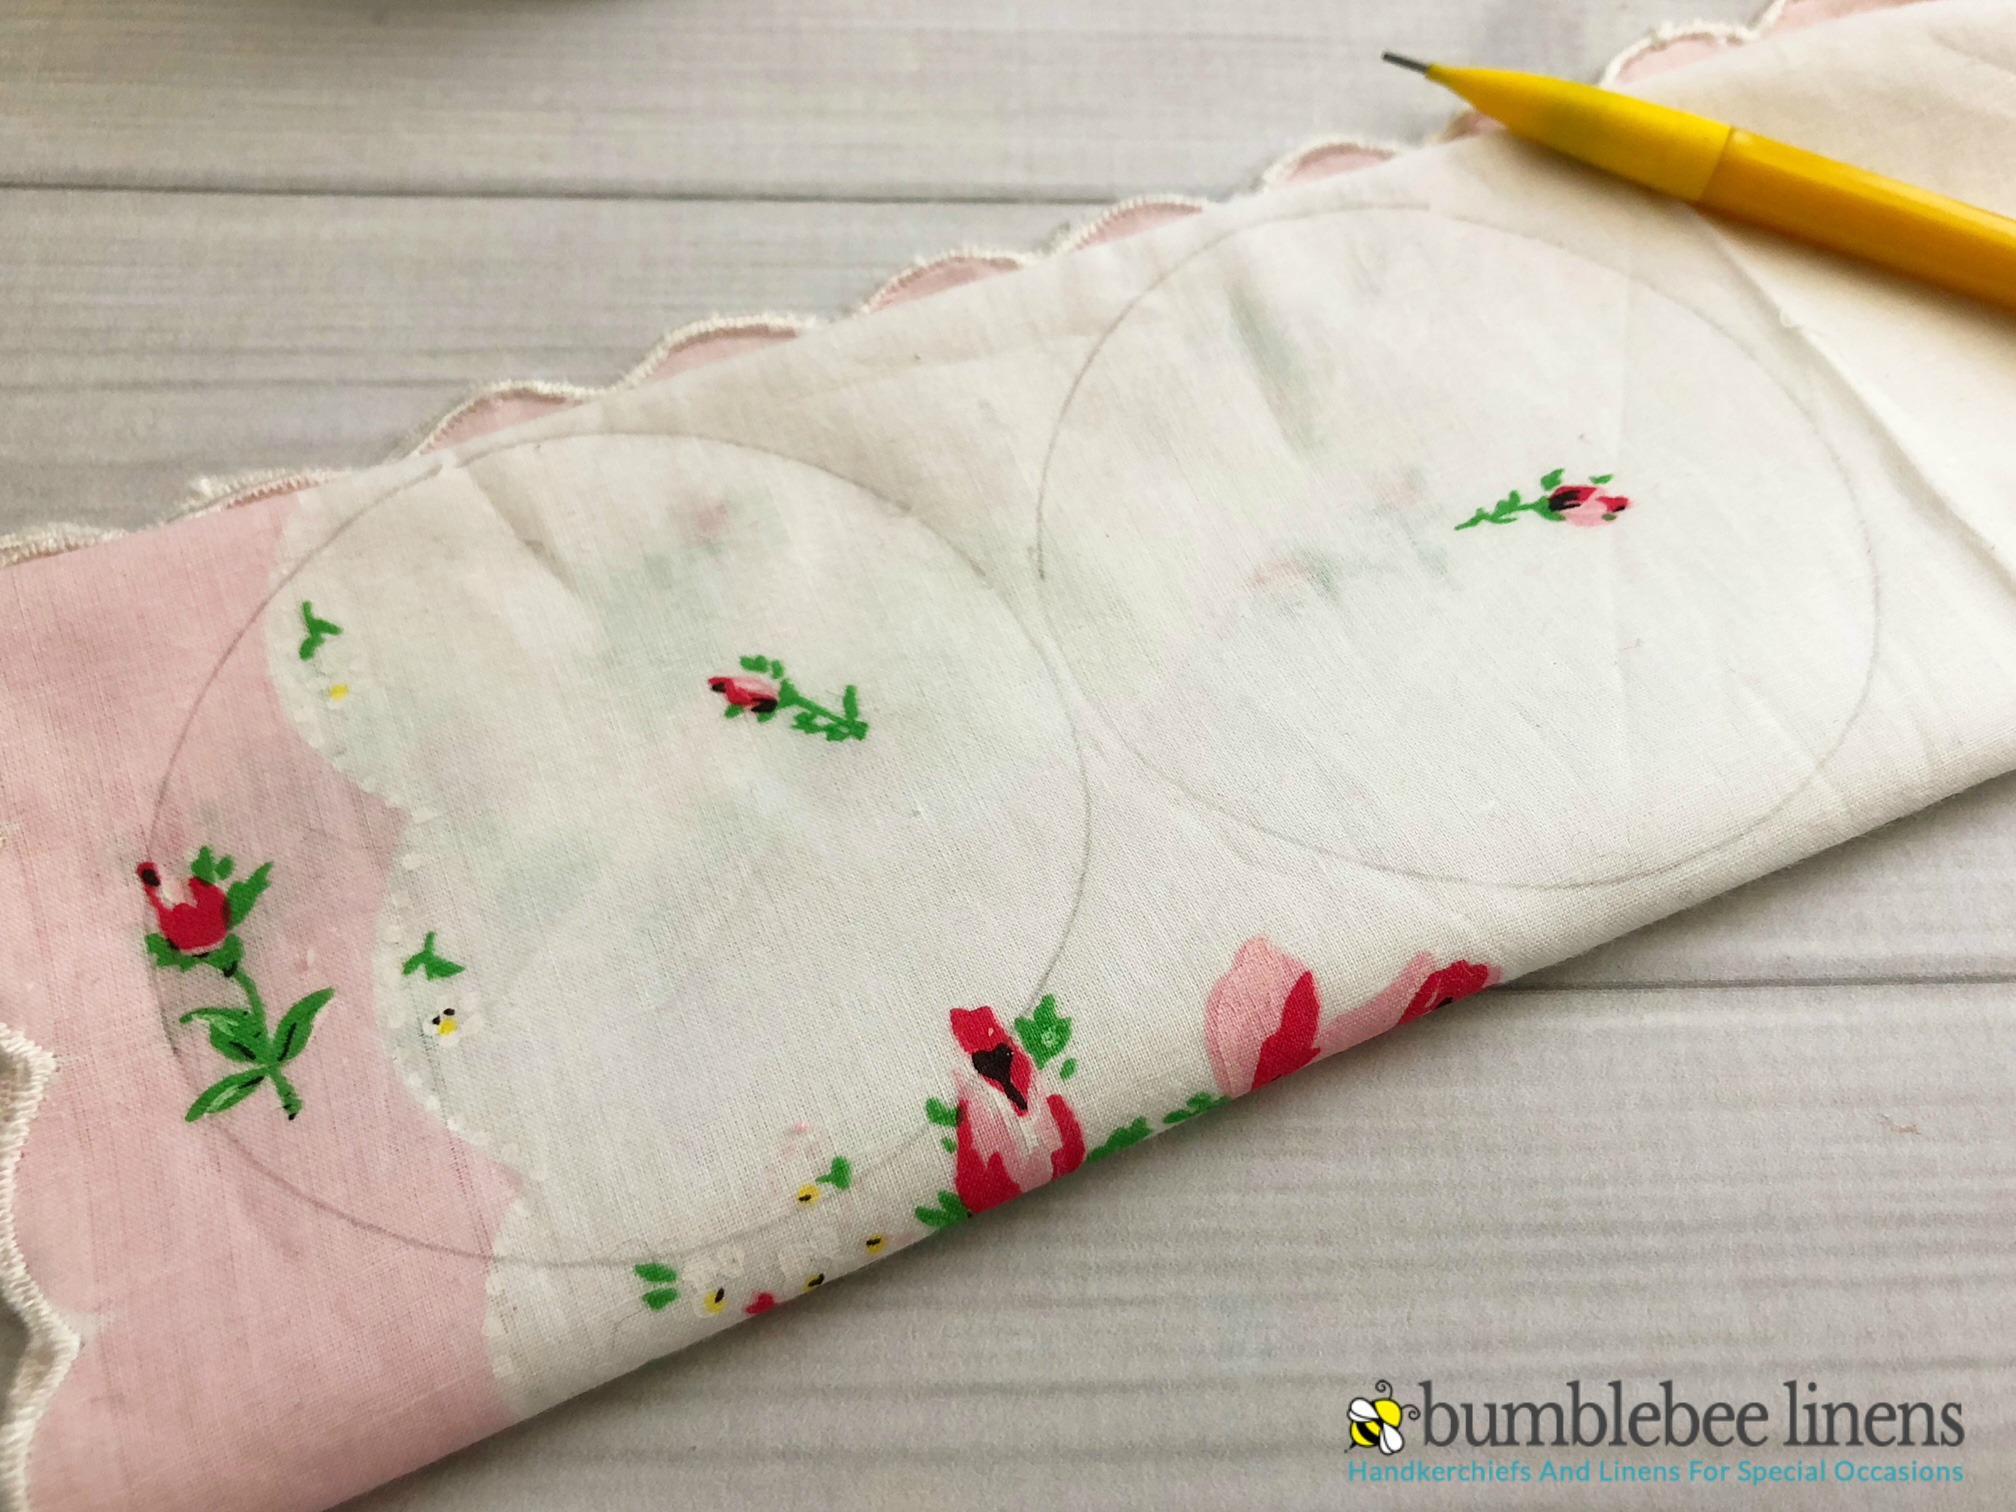 Learn How to Make a Handkerchief Hair Bow in a few simple steps.